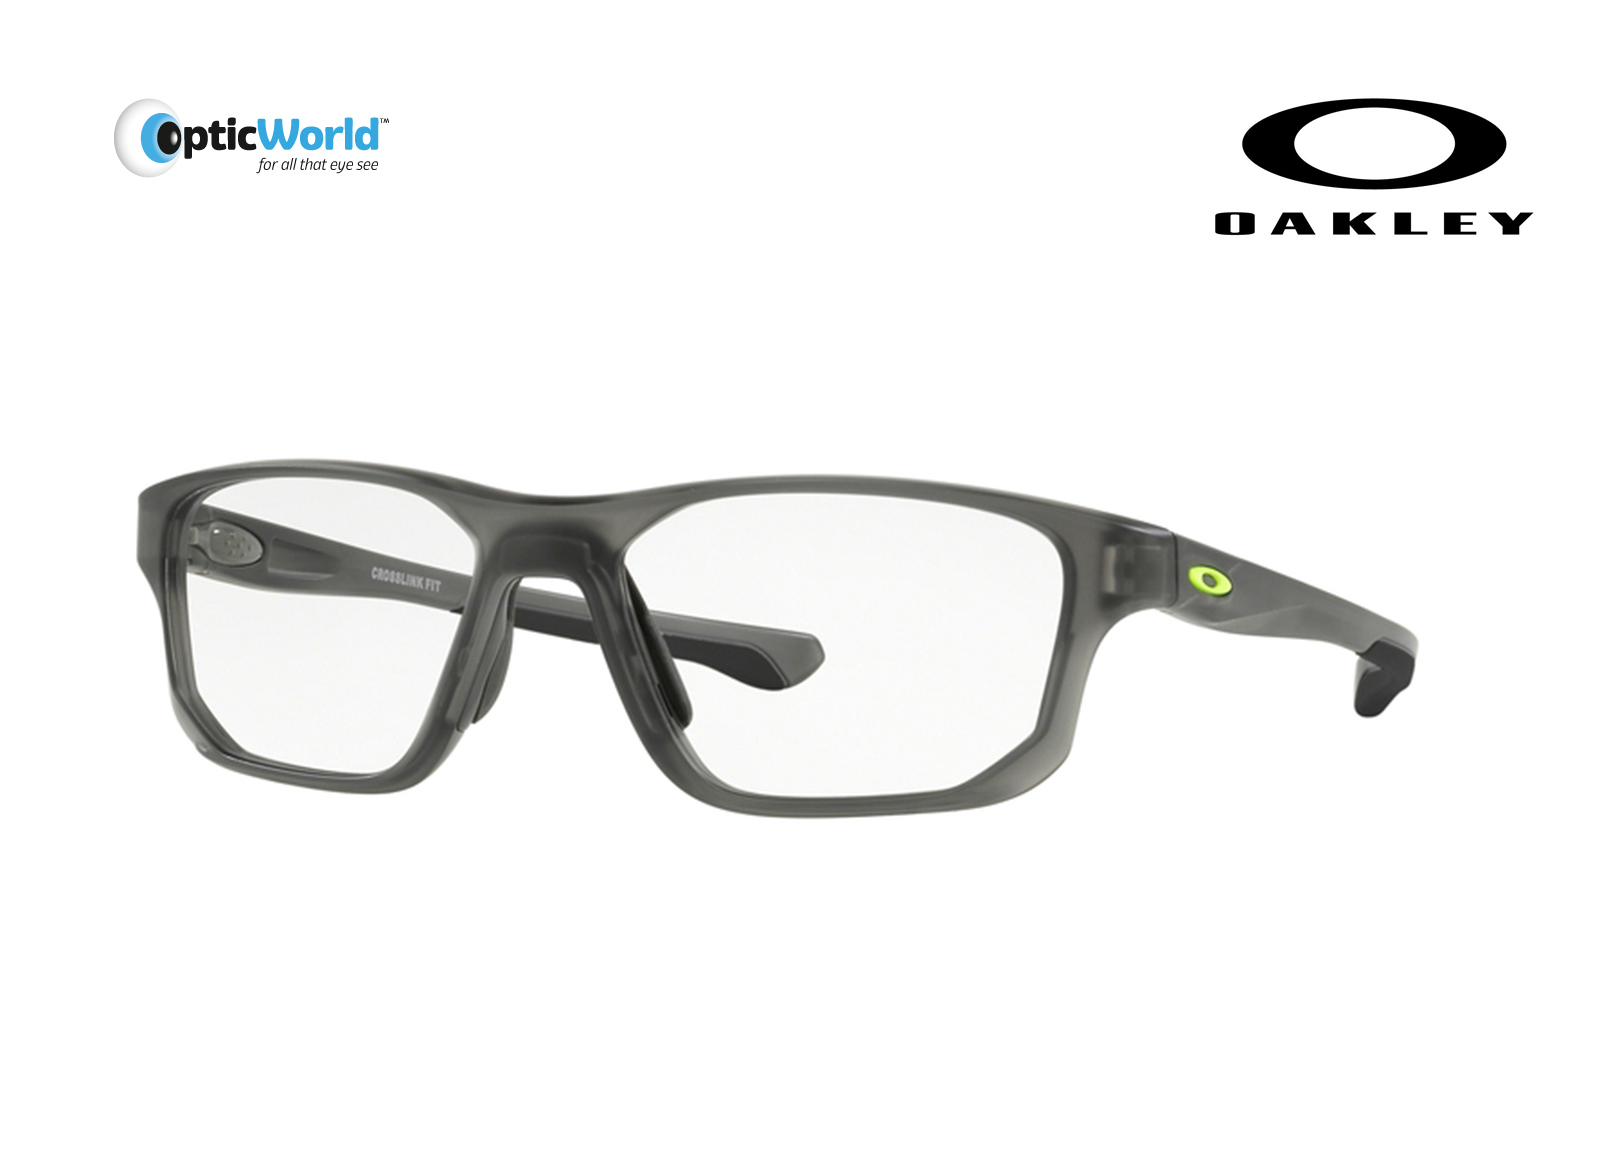 4e481608ea1 Eyeglasses Oakley Crosslink Fit 8136m-02 53 Satin Grey Smoke Lime. About  this product. Picture 1 of 2  Picture 2 of 2